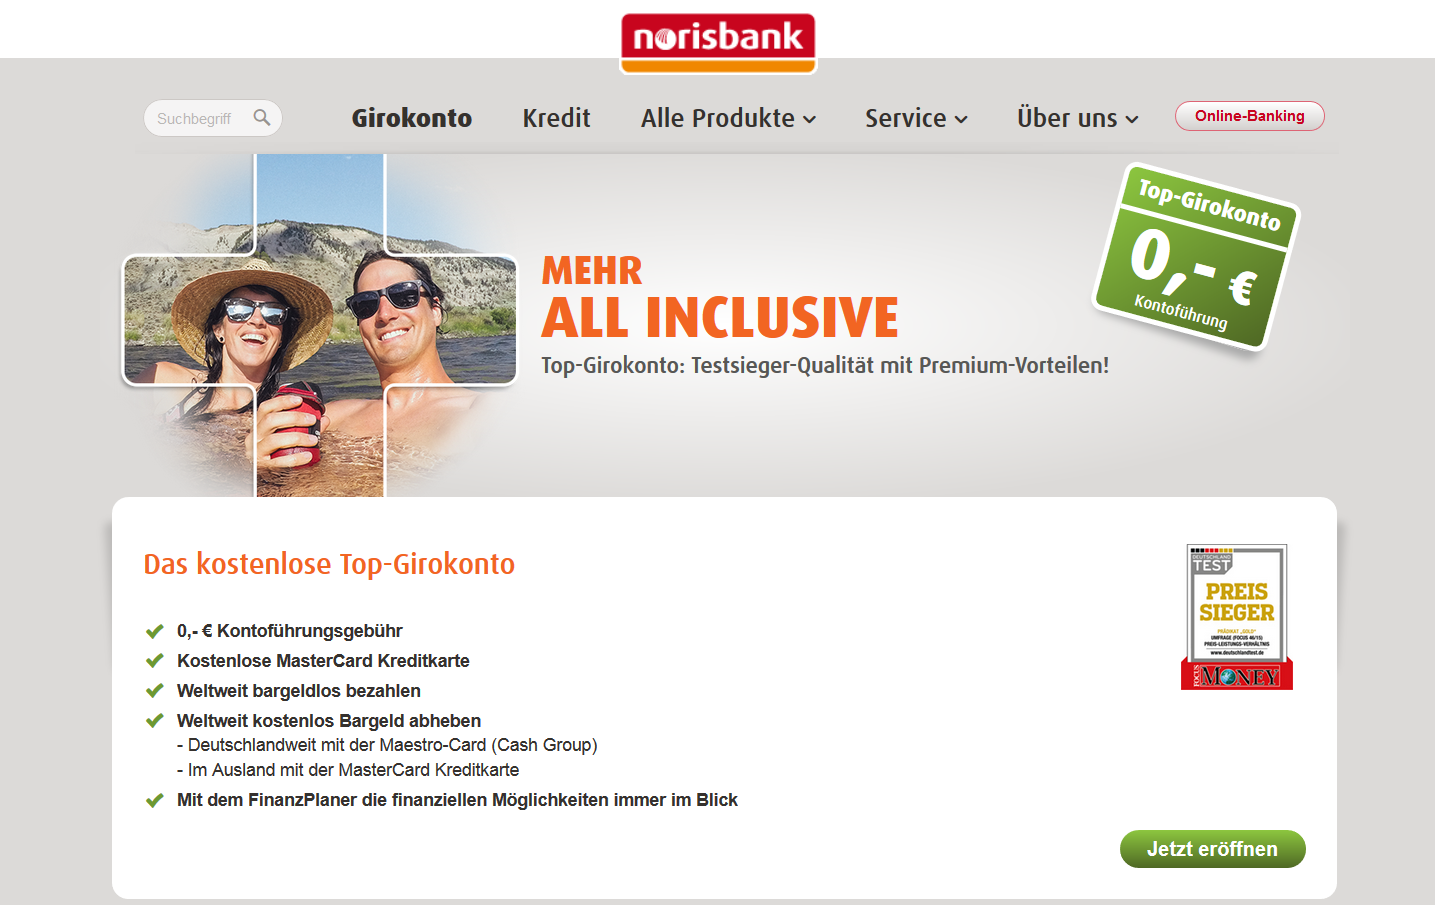 Top-Girokonto der Norisbank